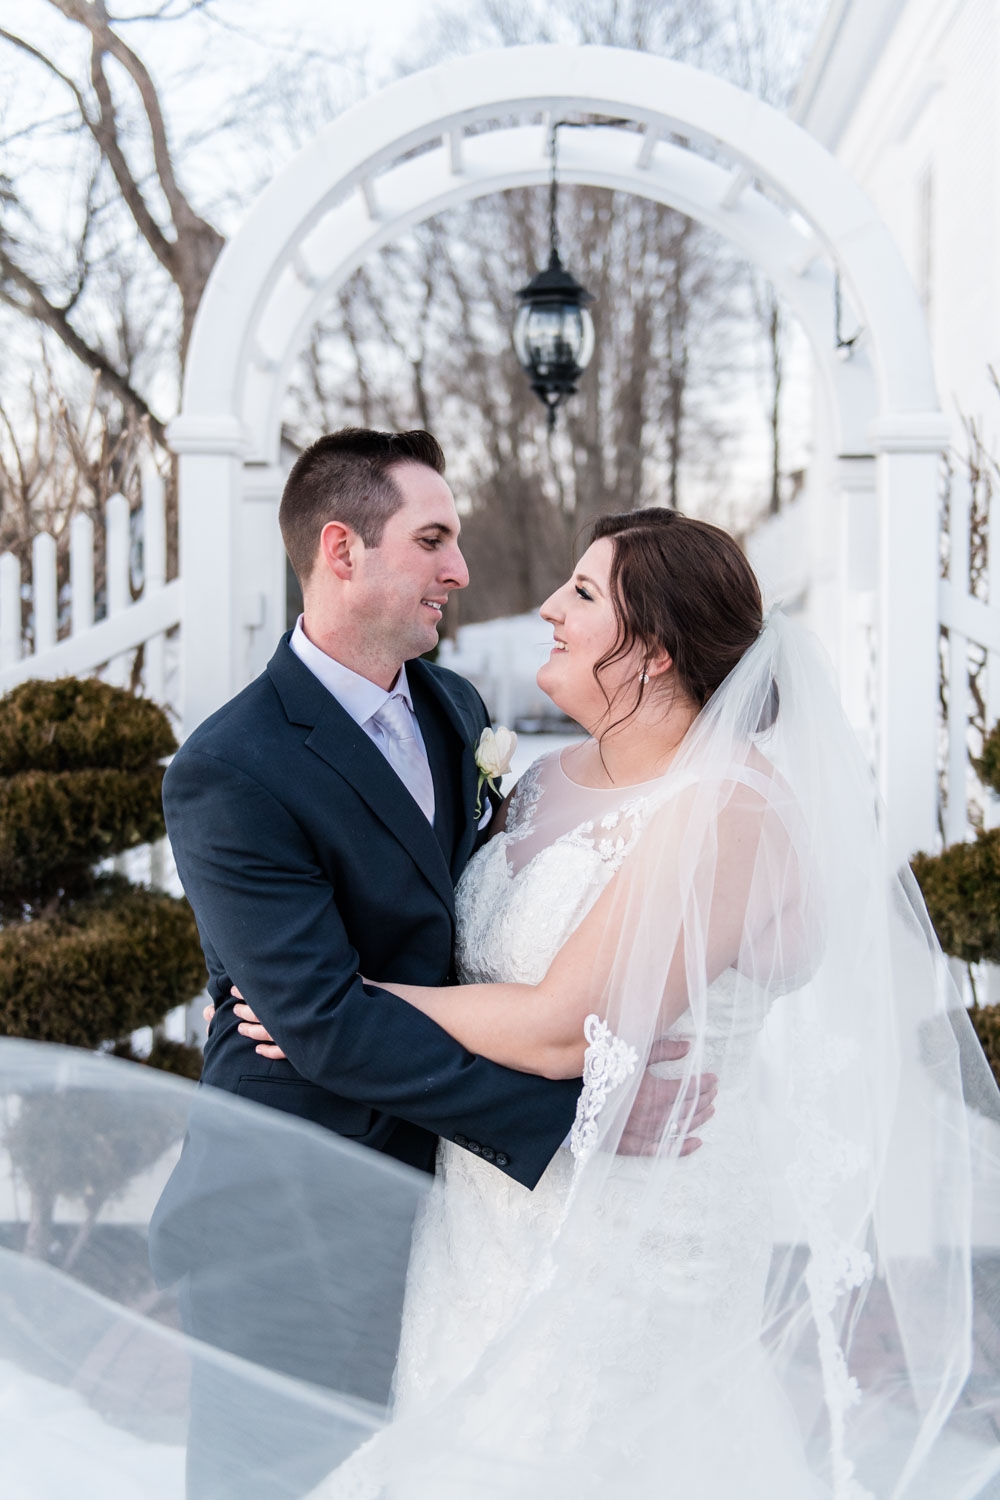 Katelyn + Joe | St. Patrick's Day Topsfield Commons Spring Wedding | Boston and New England Wedding Photography Portraits with Cathedral Veil | Lorna Stell Photo